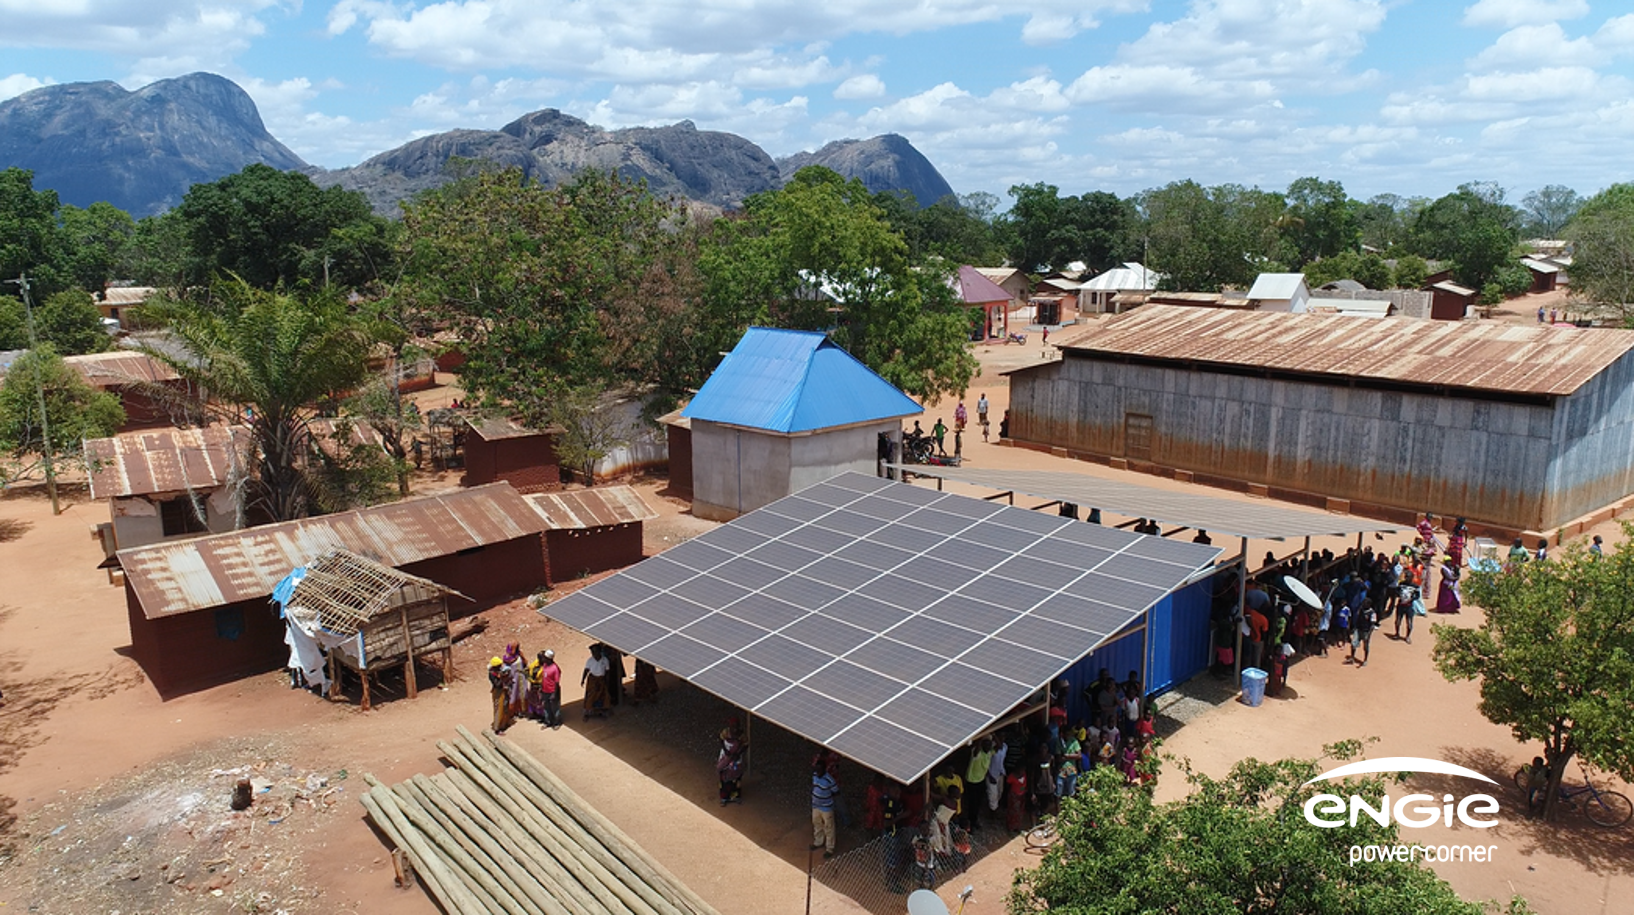 £1.5m grant secured for Innovate Energy Catalyst project in Uganda